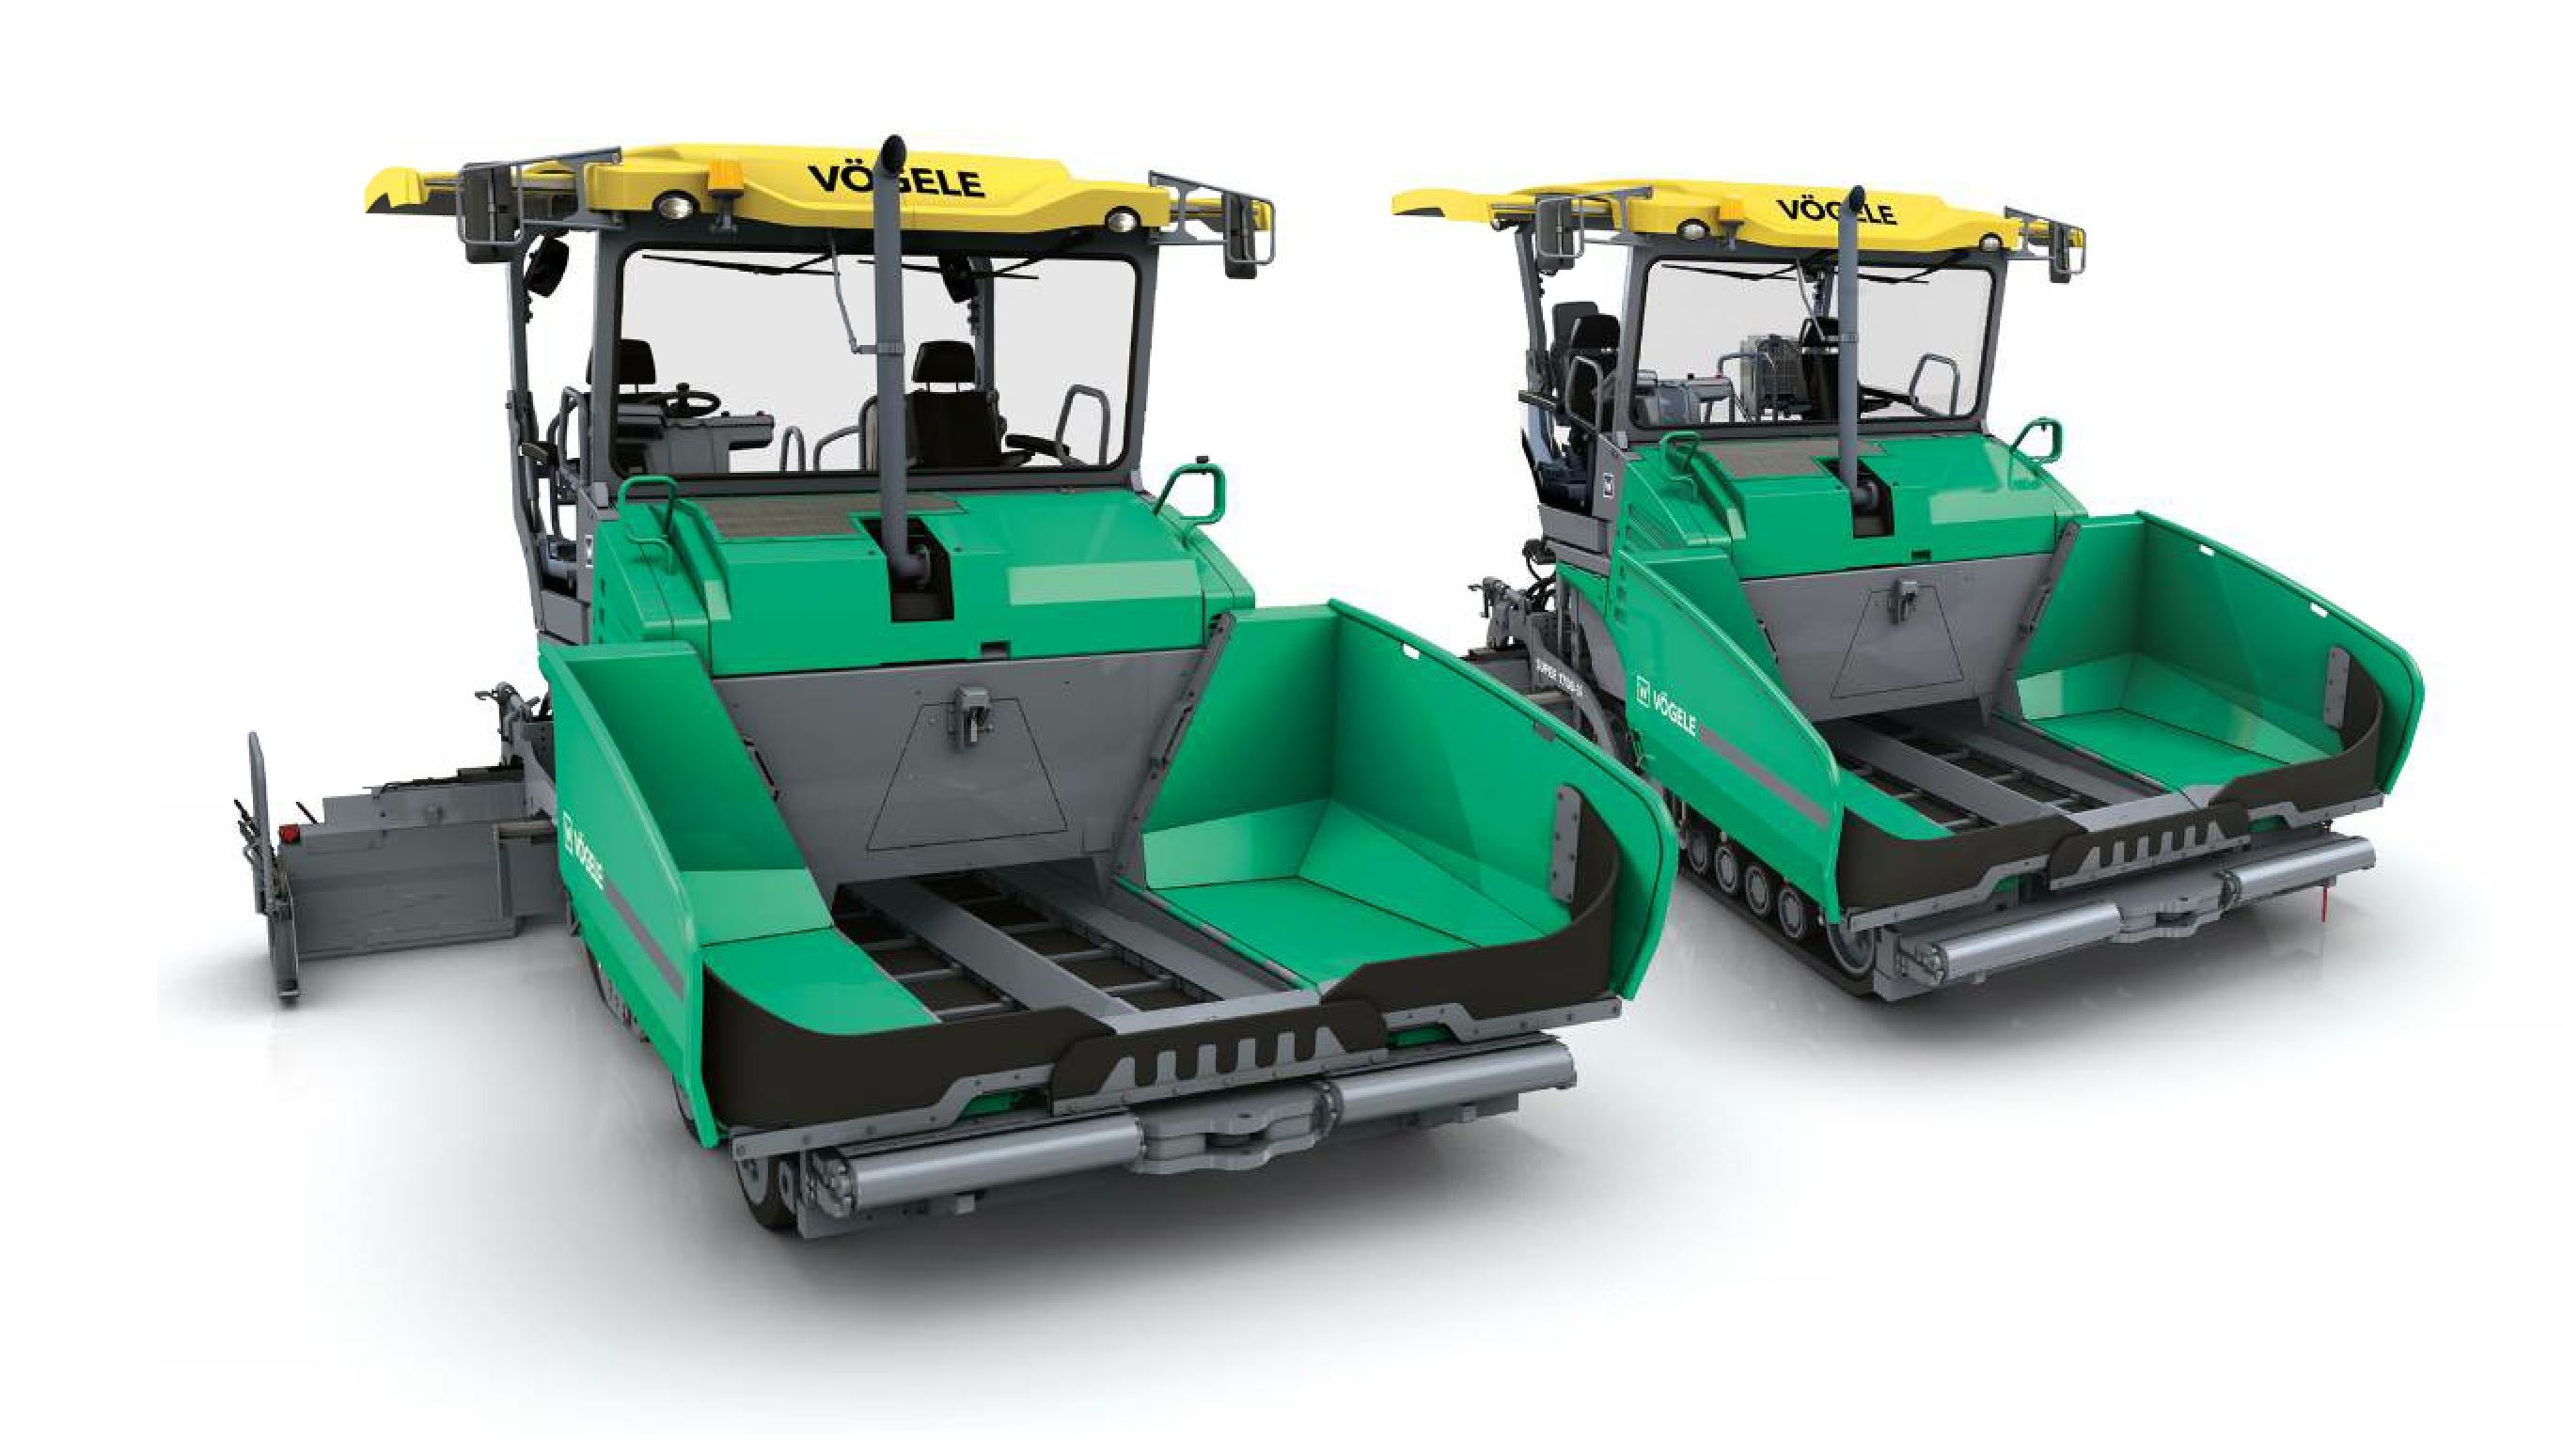 The Vögele Super 1700-3i and Super 1703-3i universal class pavers start at 8 feet widths.